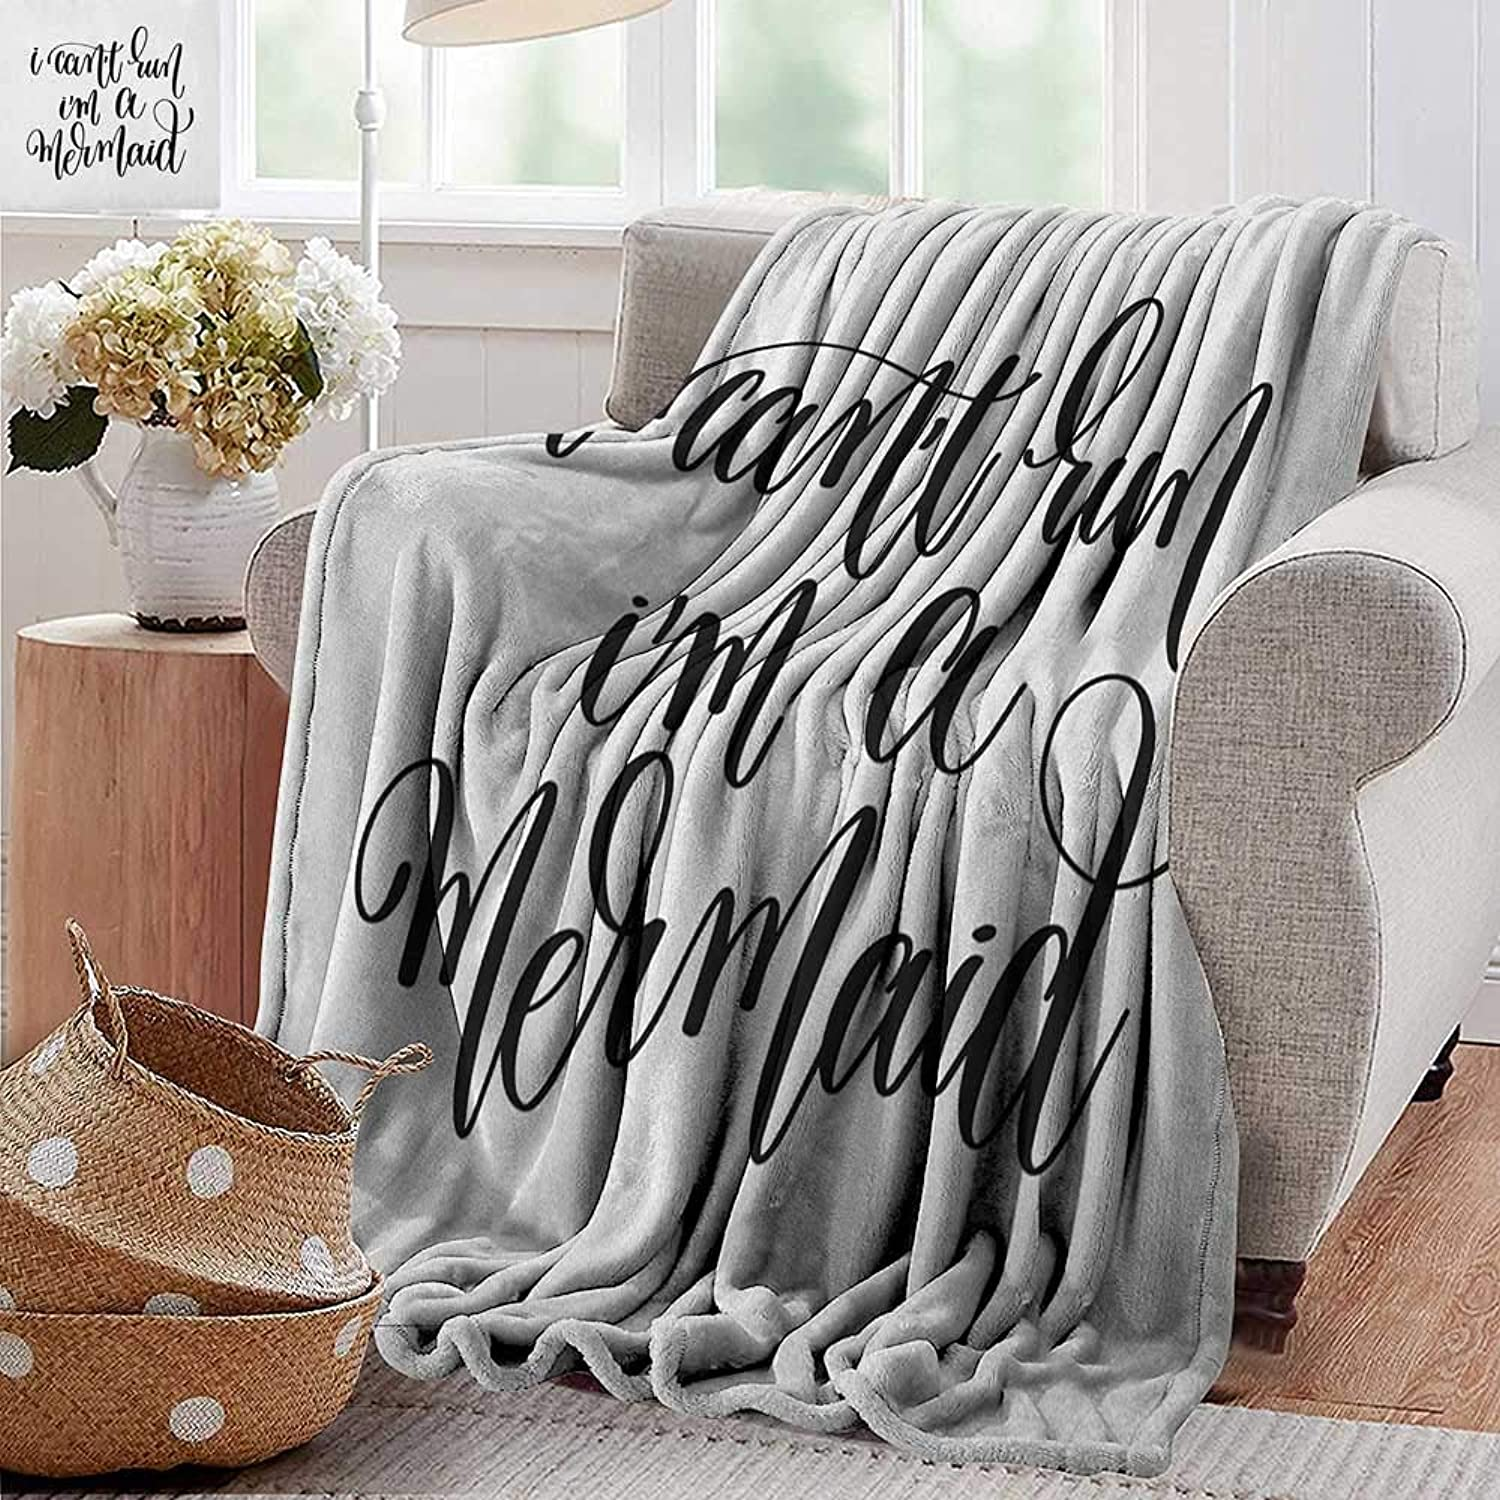 XavieraDoherty Printed Blanket,Im Mermaid,Saying in Relation to Mythical Beings Awe Inspiring Girl Aspirations Lettering, Black White,300GSM,Super Soft and Warm,Durable Throw Blanket 35 x60